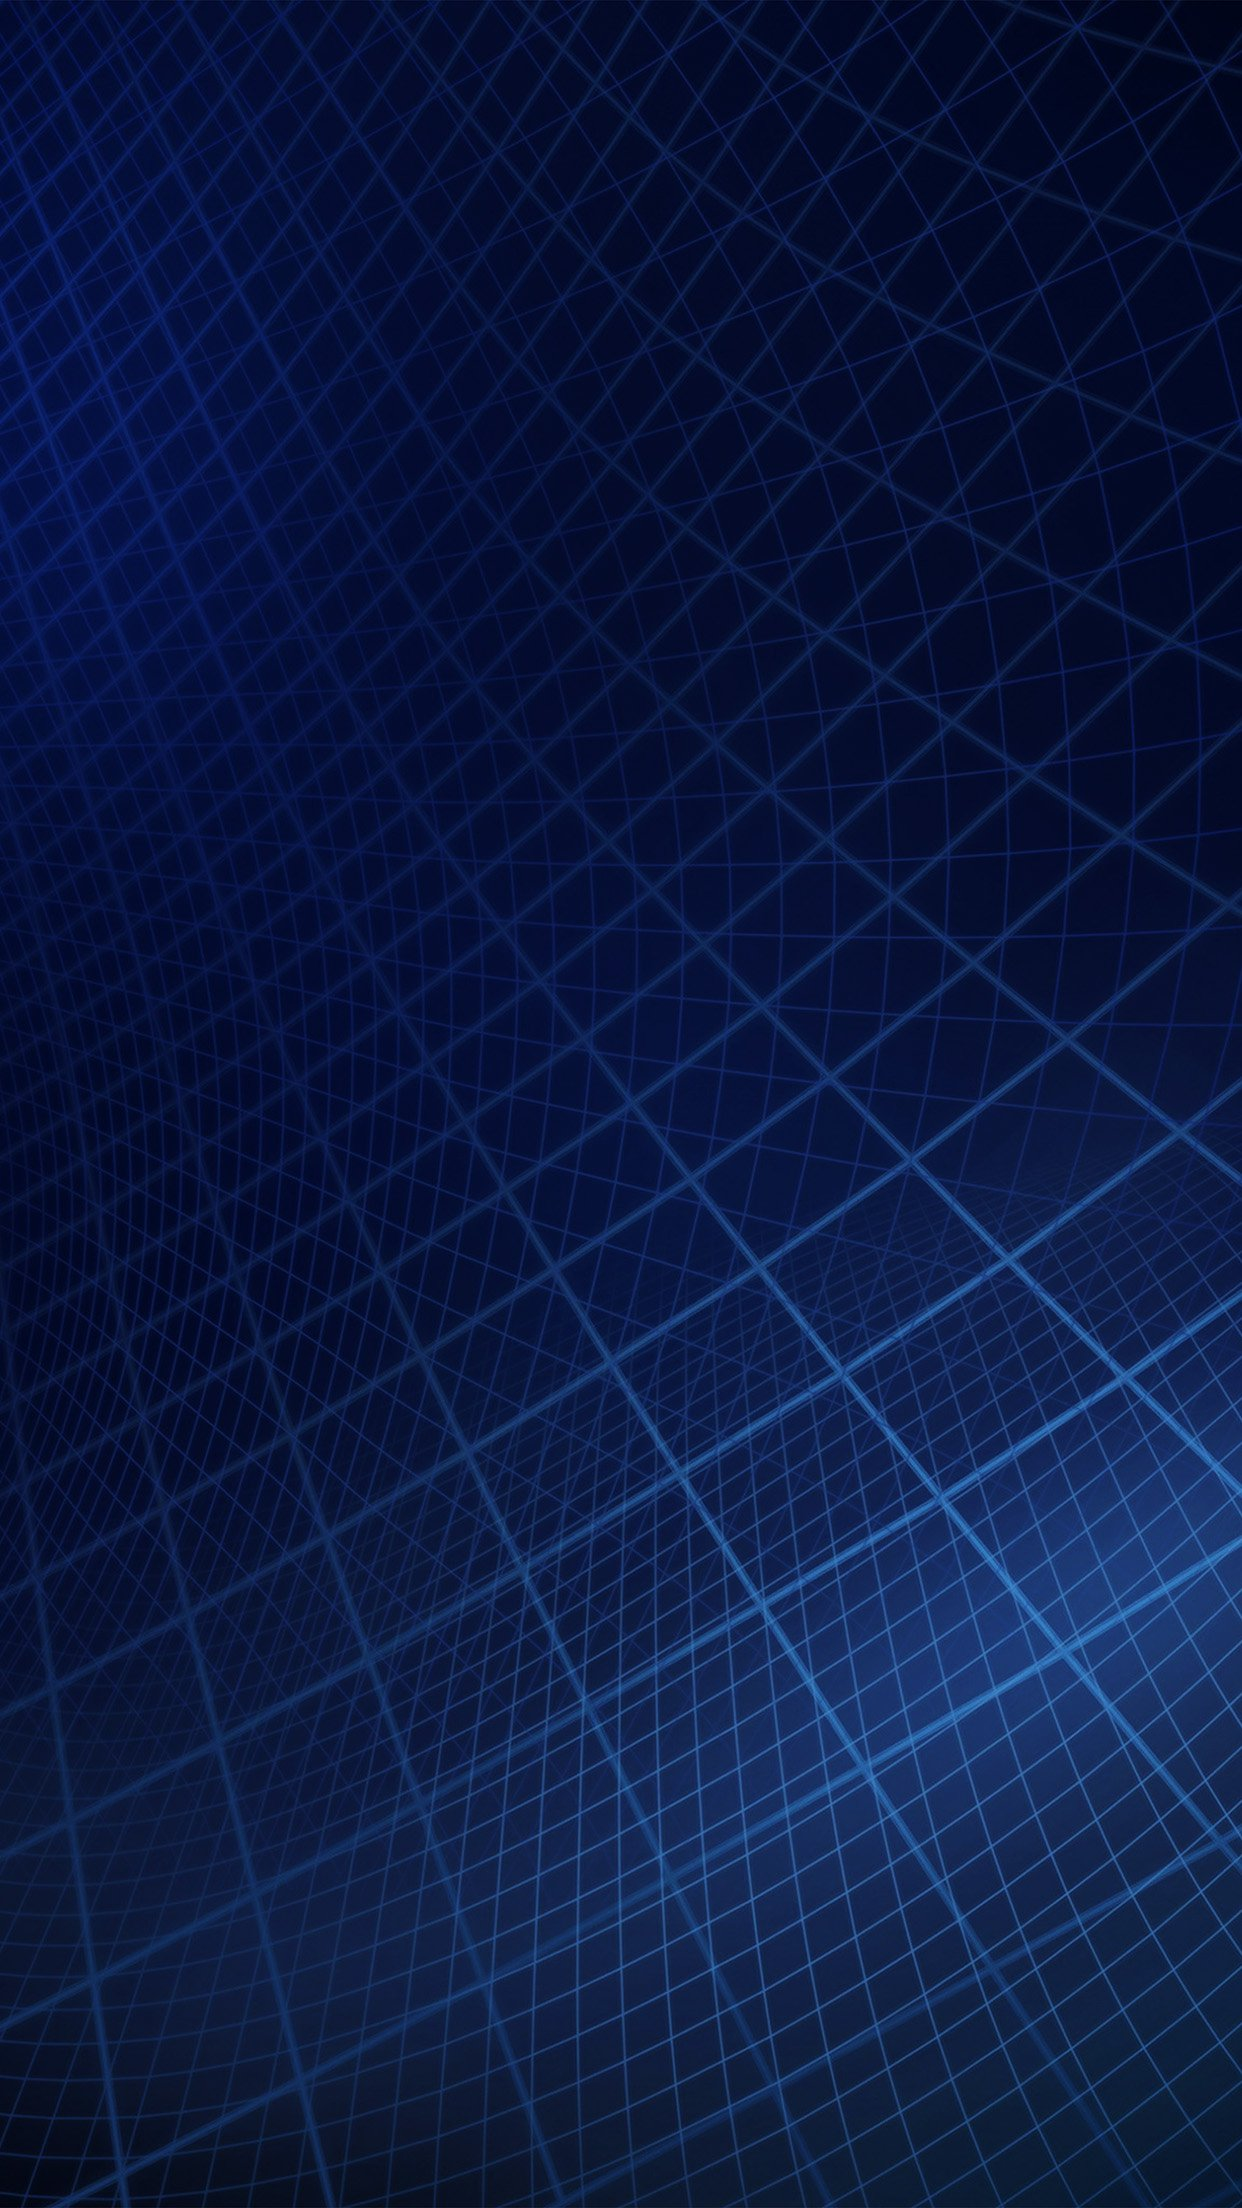 Abstract line digital dark blue pattern android wallpaper abstract line digital dark blue pattern android wallpaper android hd wallpapers voltagebd